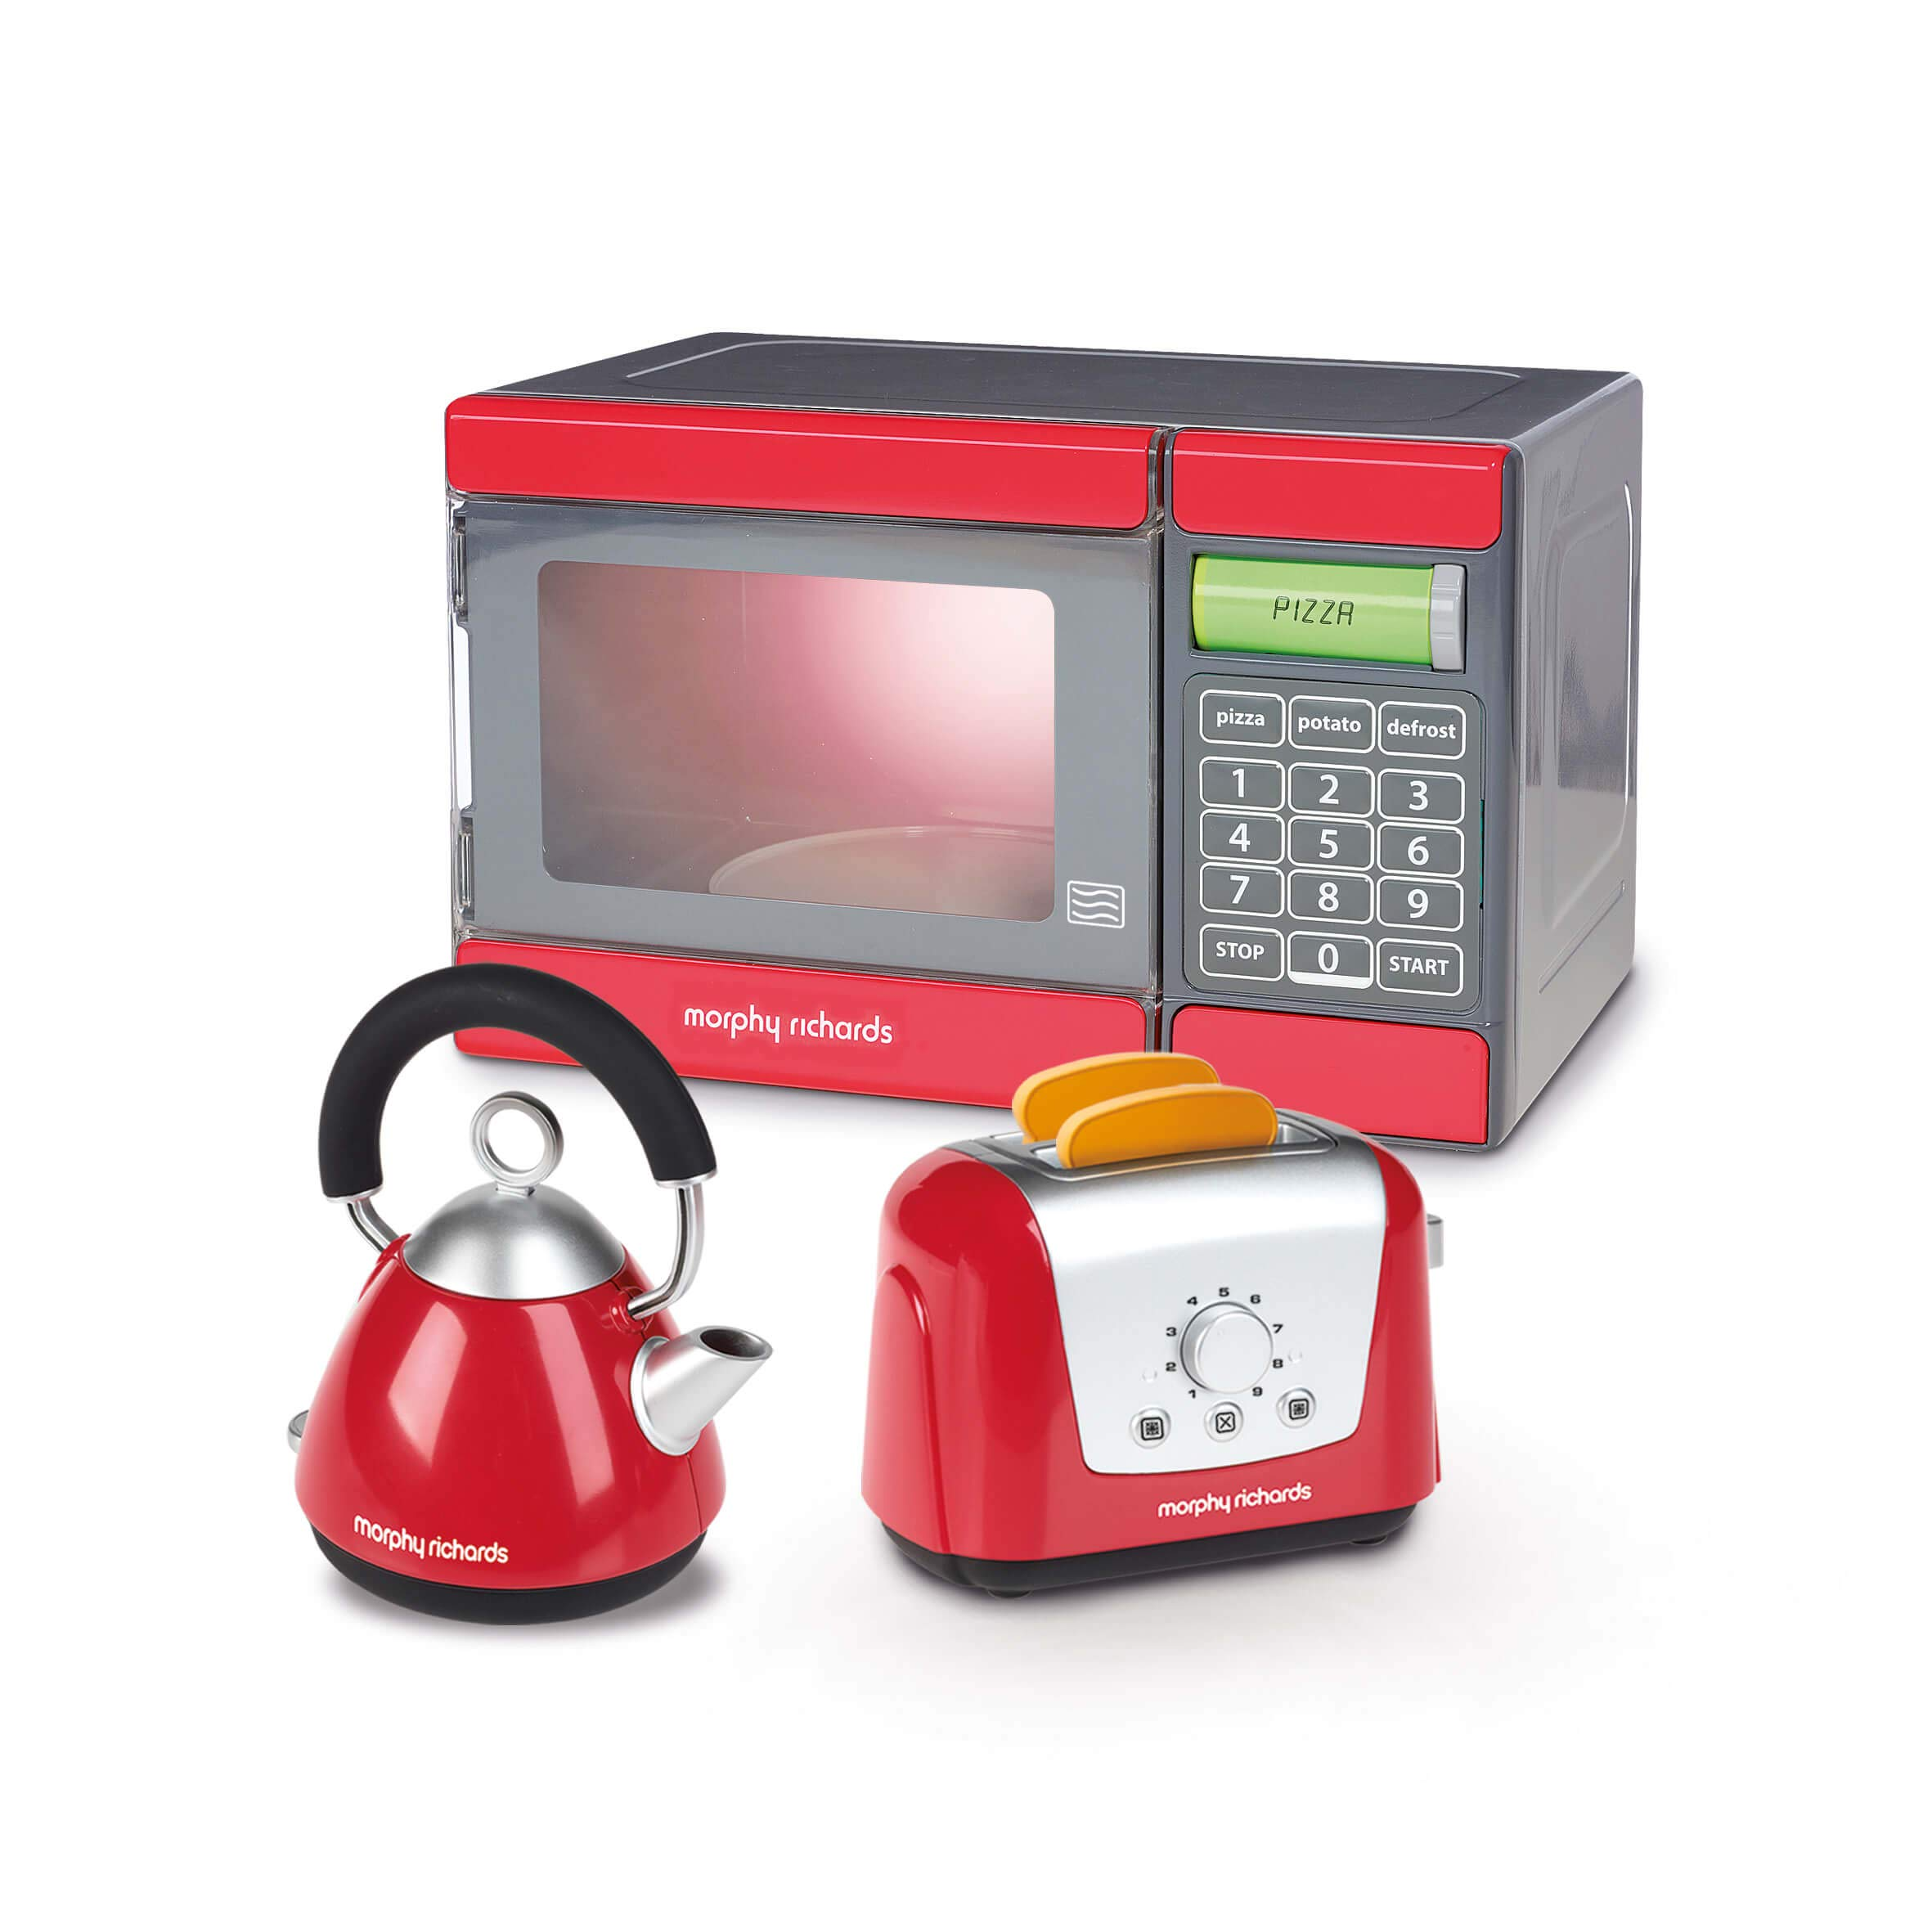 CASDON Little Cook Morphy Richards Microwave, Kettle & Toaster Toy, Red/Grey/Black